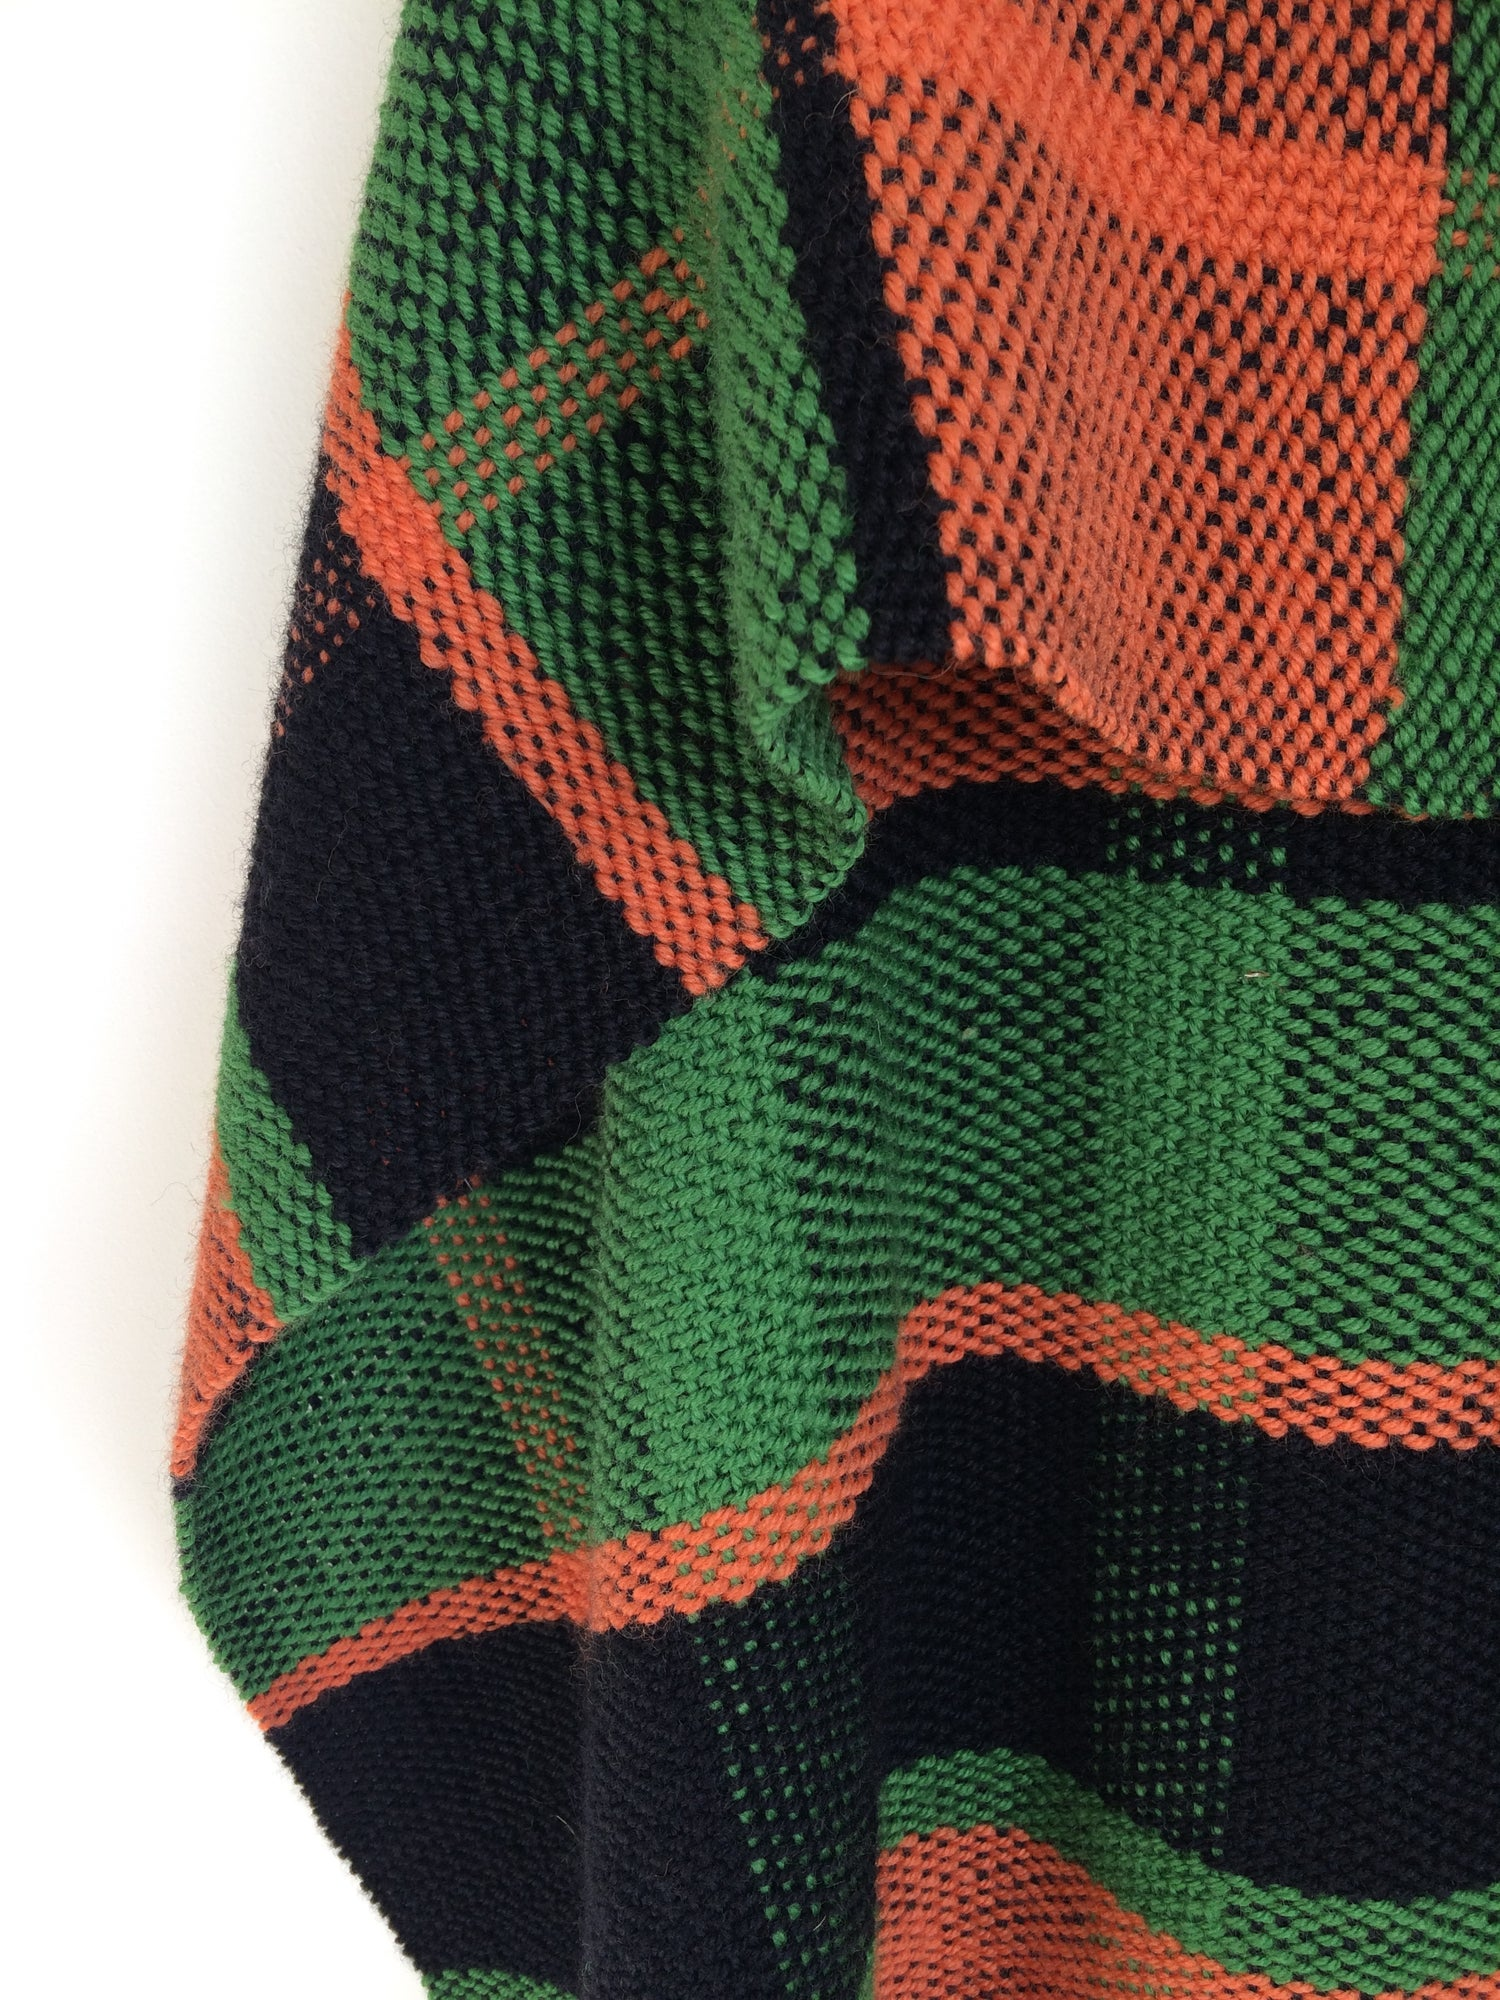 Image of Workshop 1: Weave your own plaid design